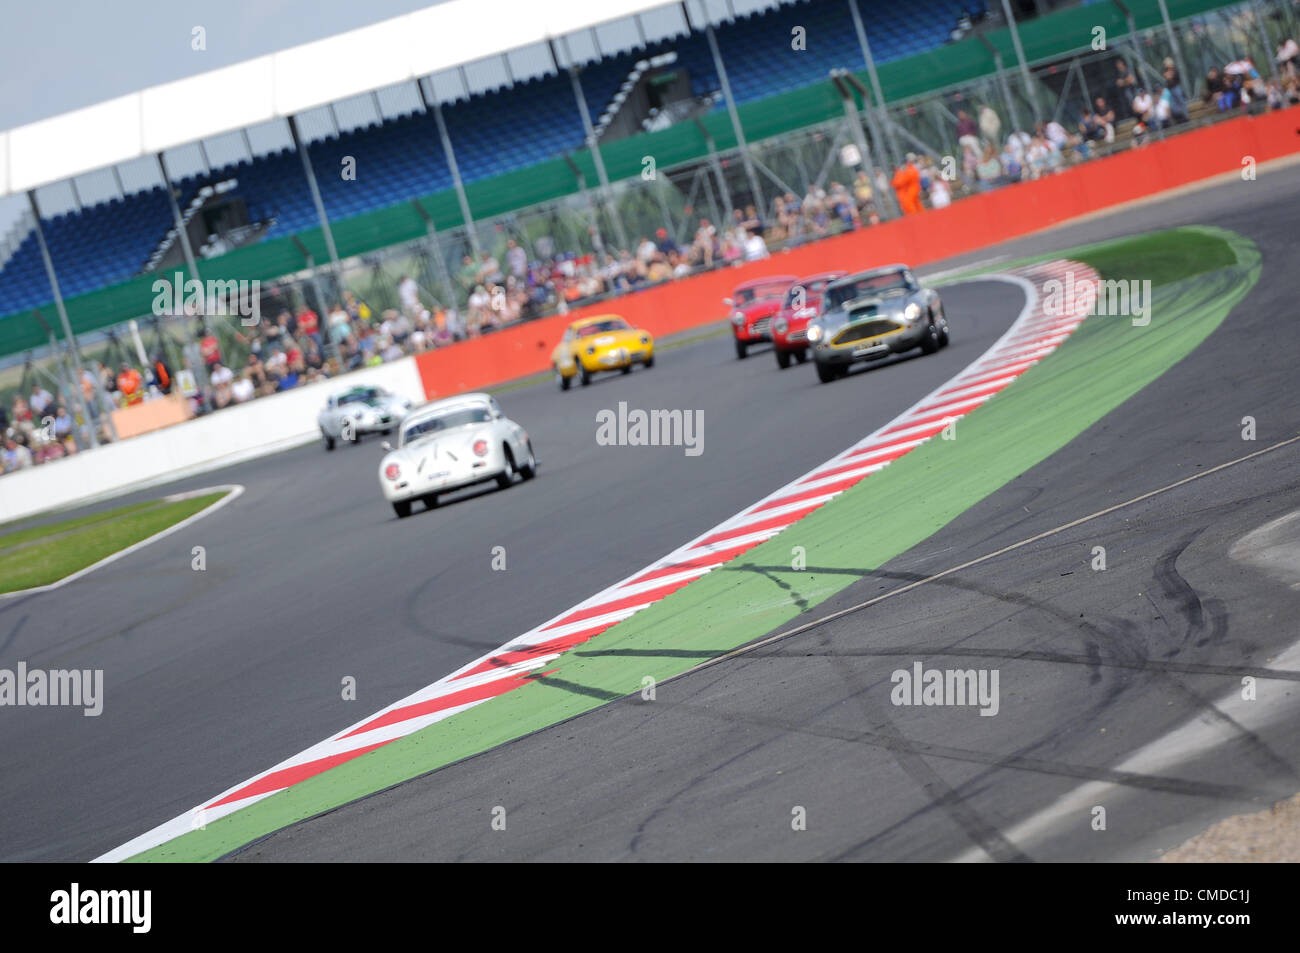 22nd July 2012, Silverstone, UK.  Skid marks from an earlier accident are seen at Copse Corner during the Royal - Stock Image